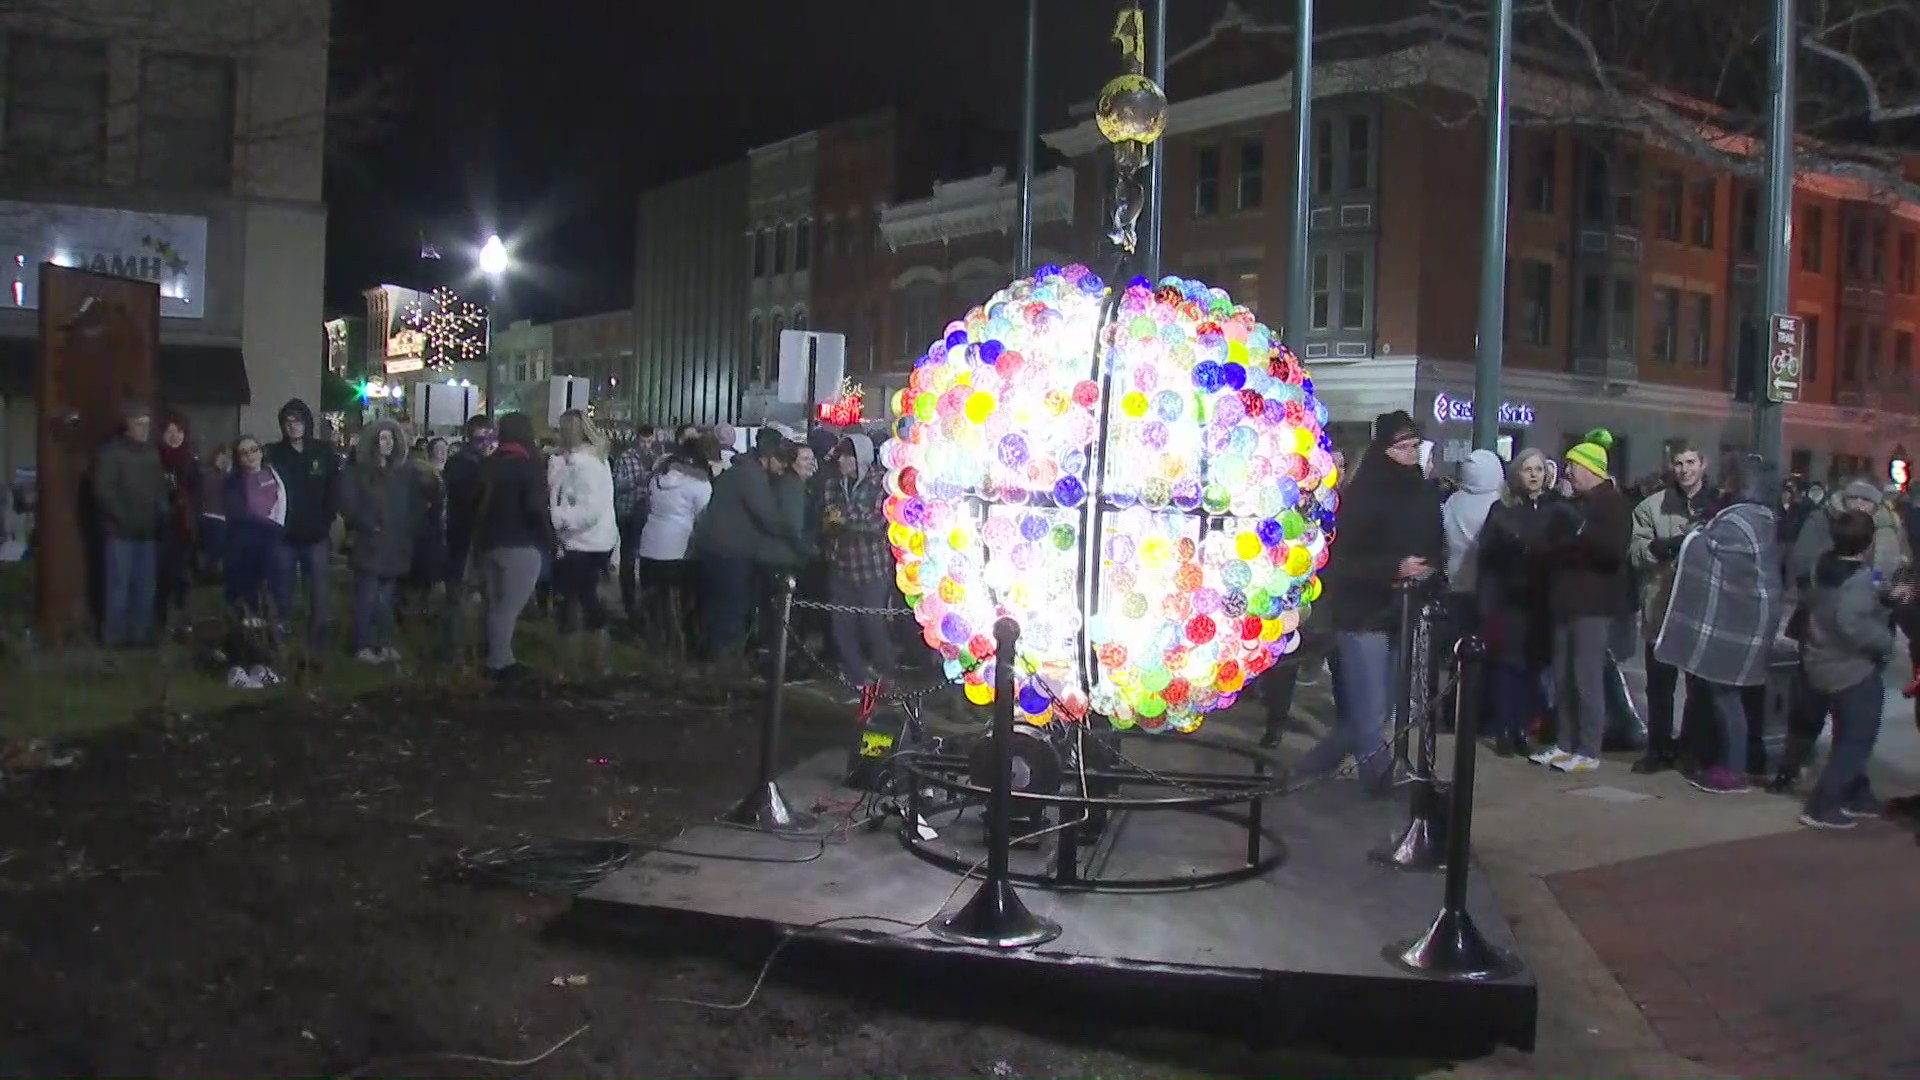 Lancaster Ohio Halloween 2020 VIDEO: Celebrate the new year with Glass Town Countdown globe in